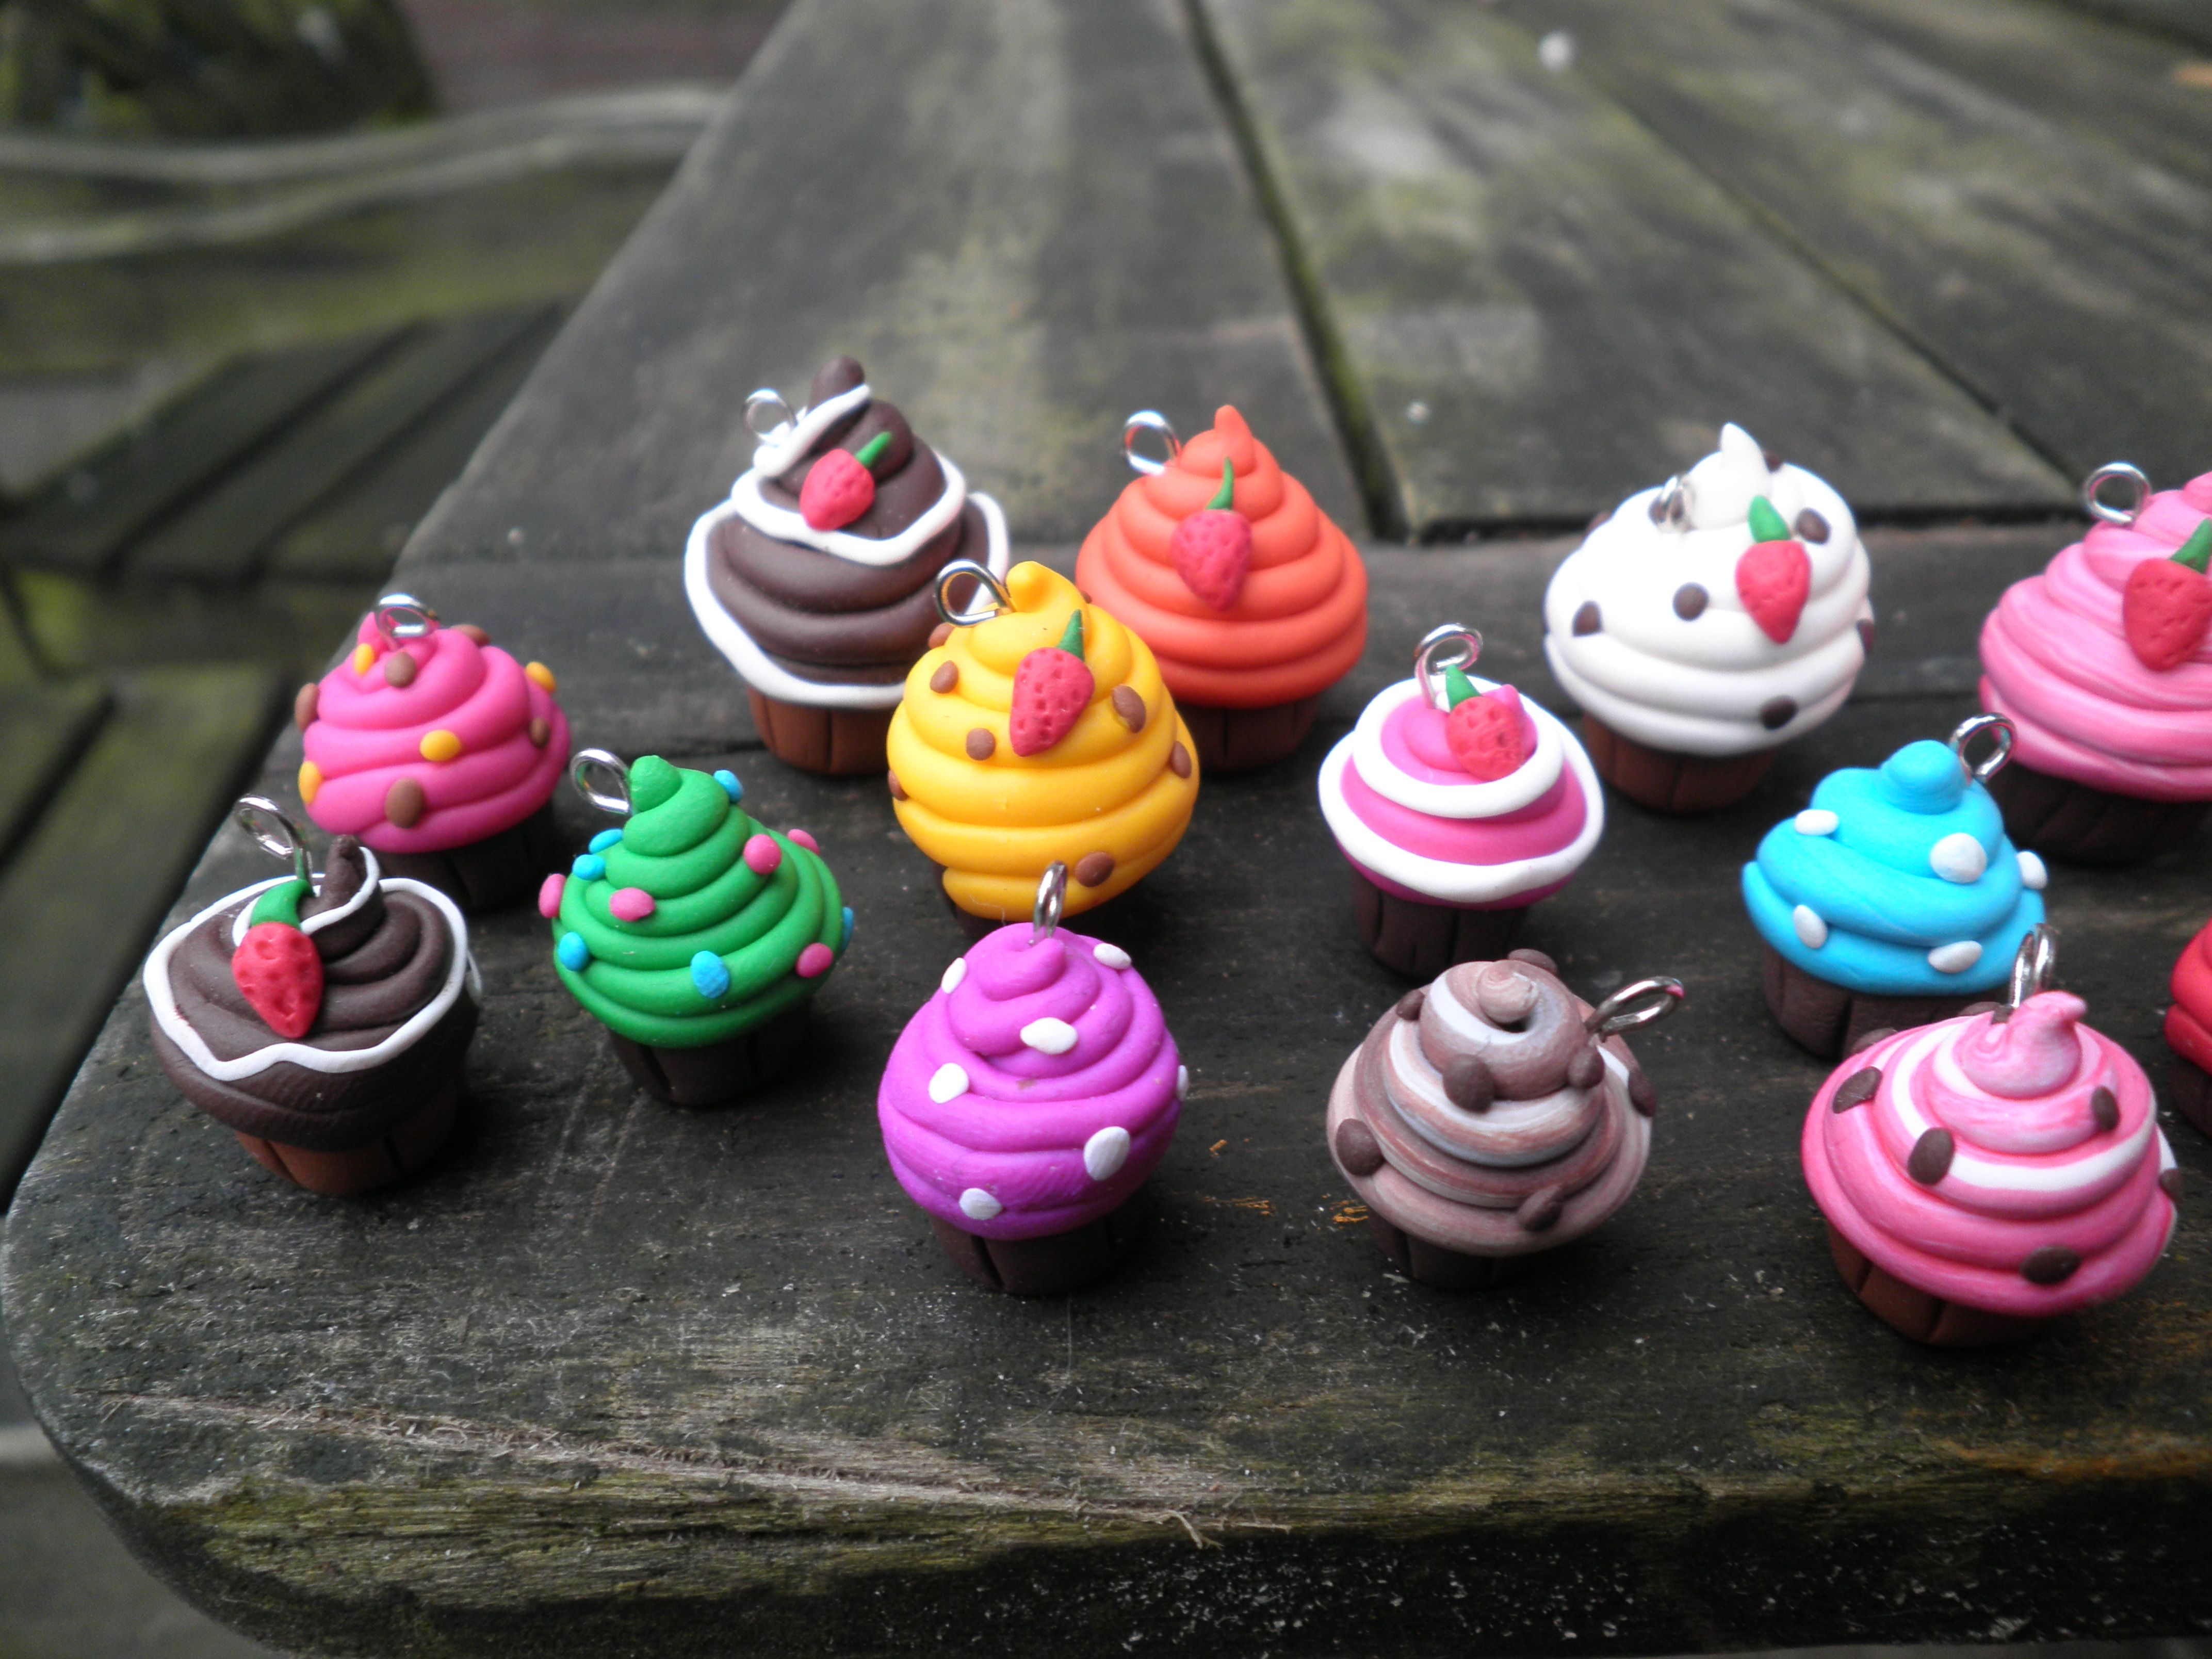 Home made cupcakes with fimo clay!